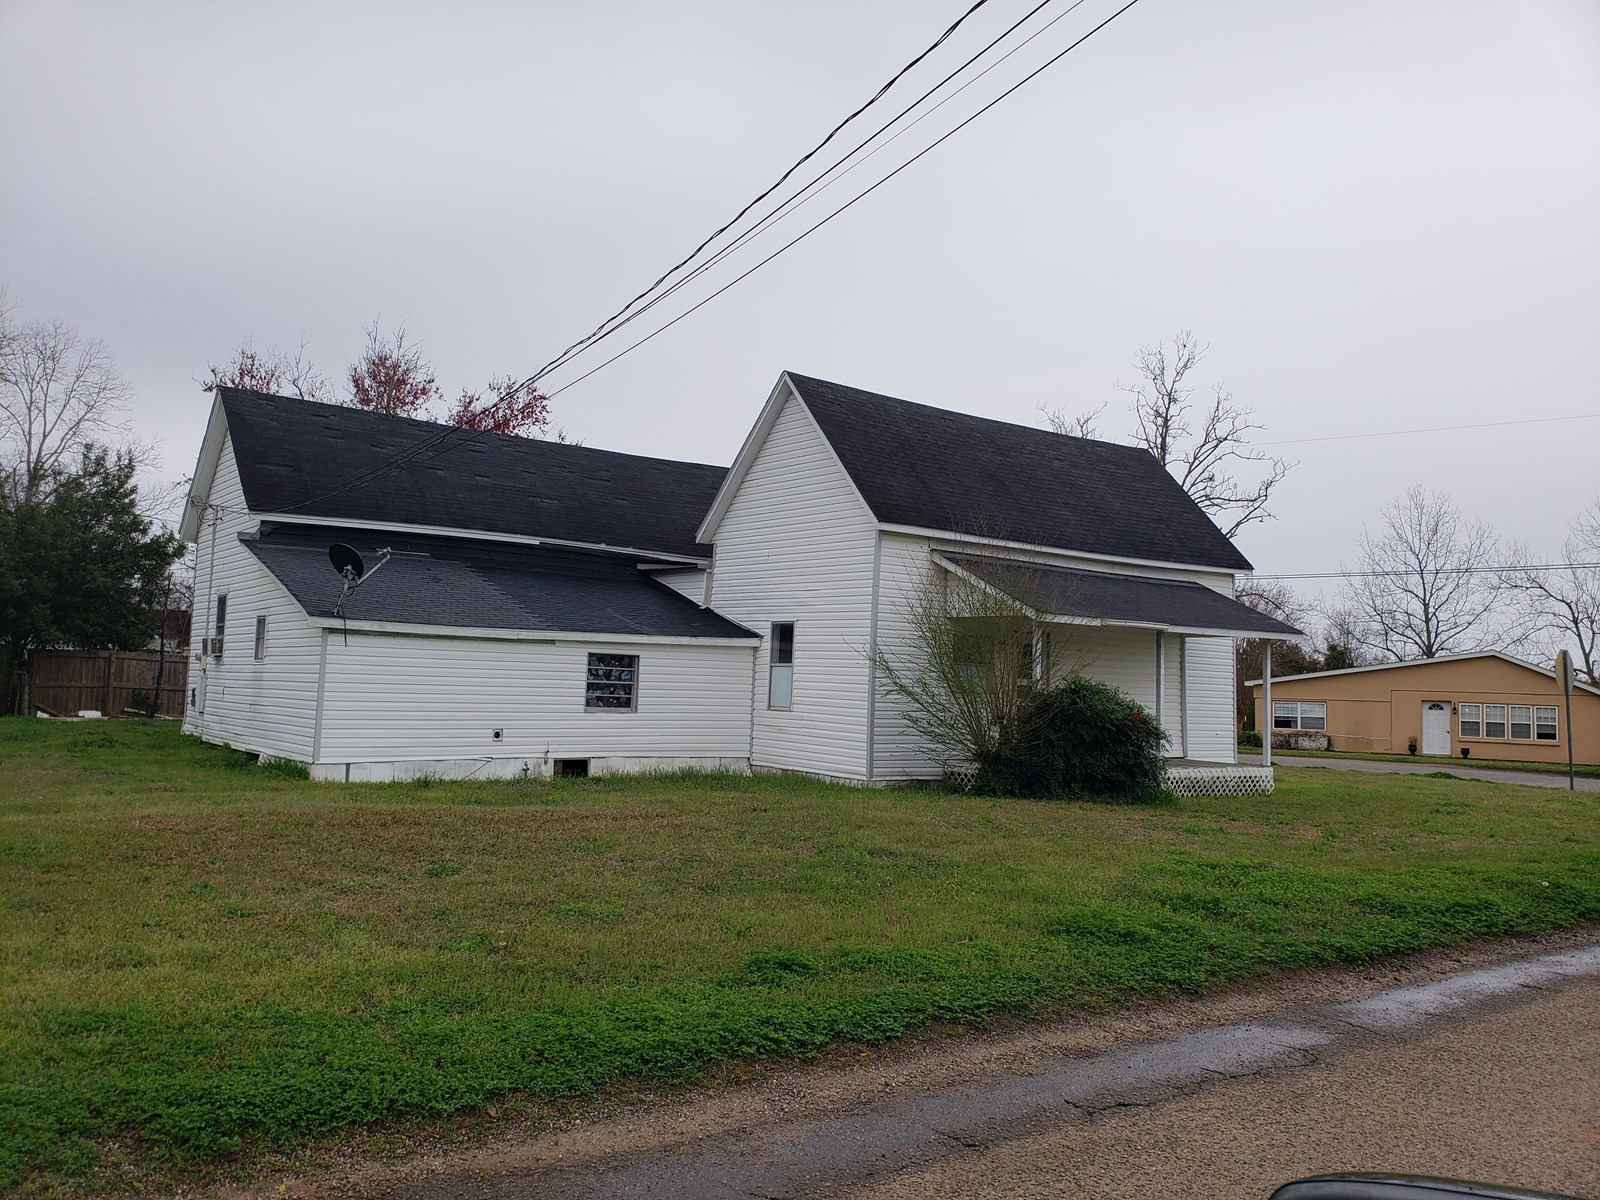 3B/1B HOME FOR SALE SLOCOMB, ALABAMA